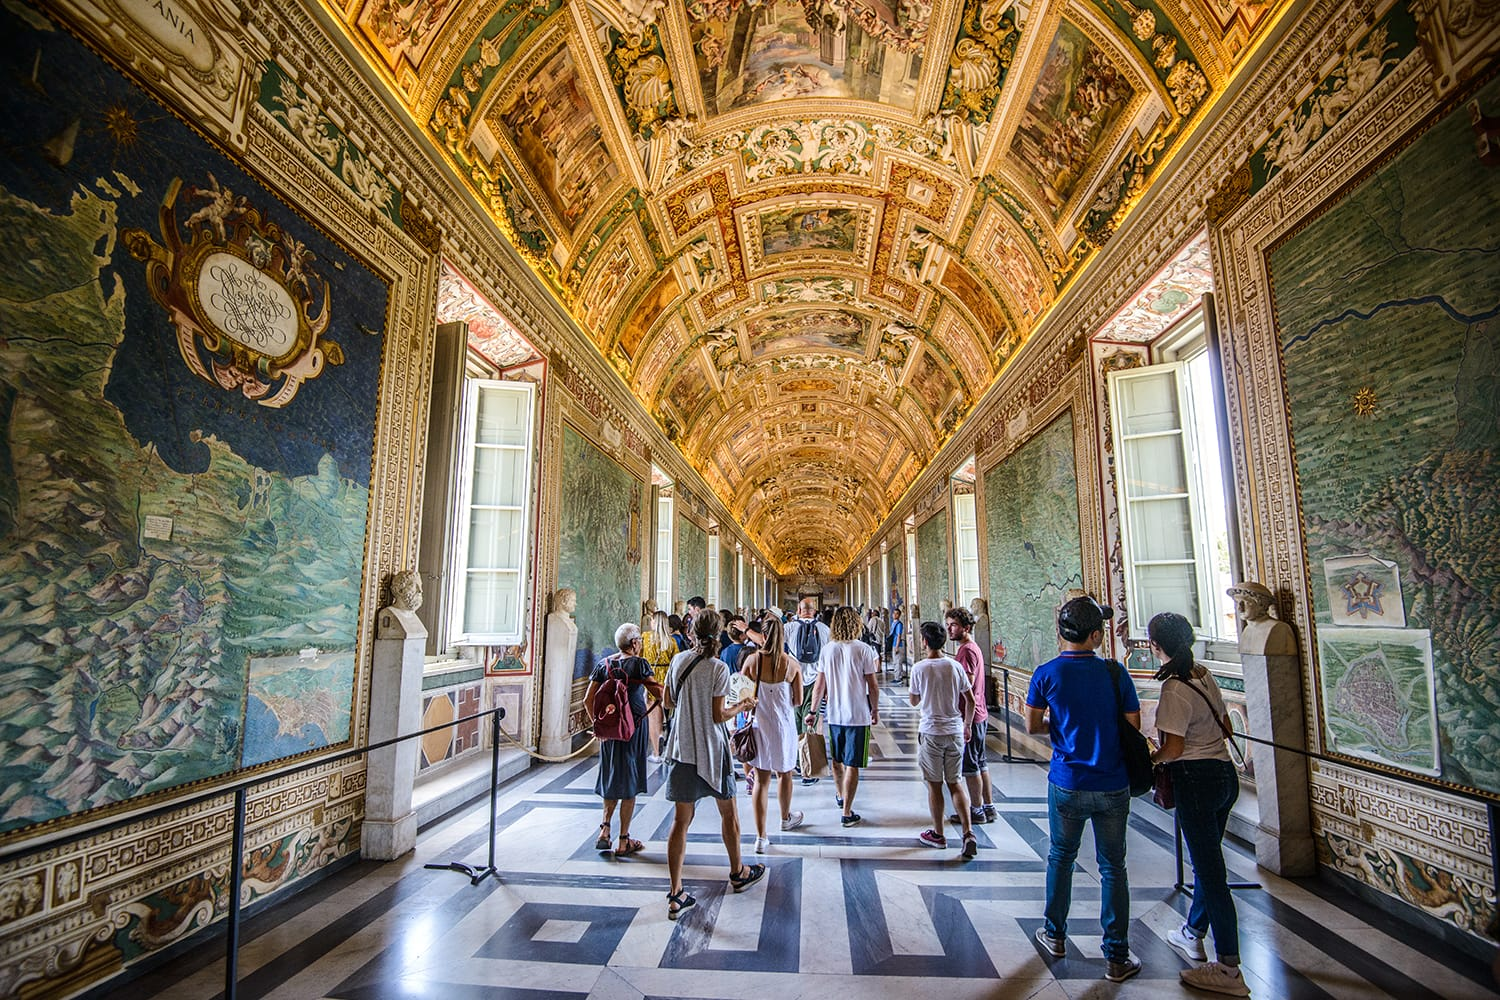 Panorama of people visiting and enjoying the Vatican Museum in Rome, Italy